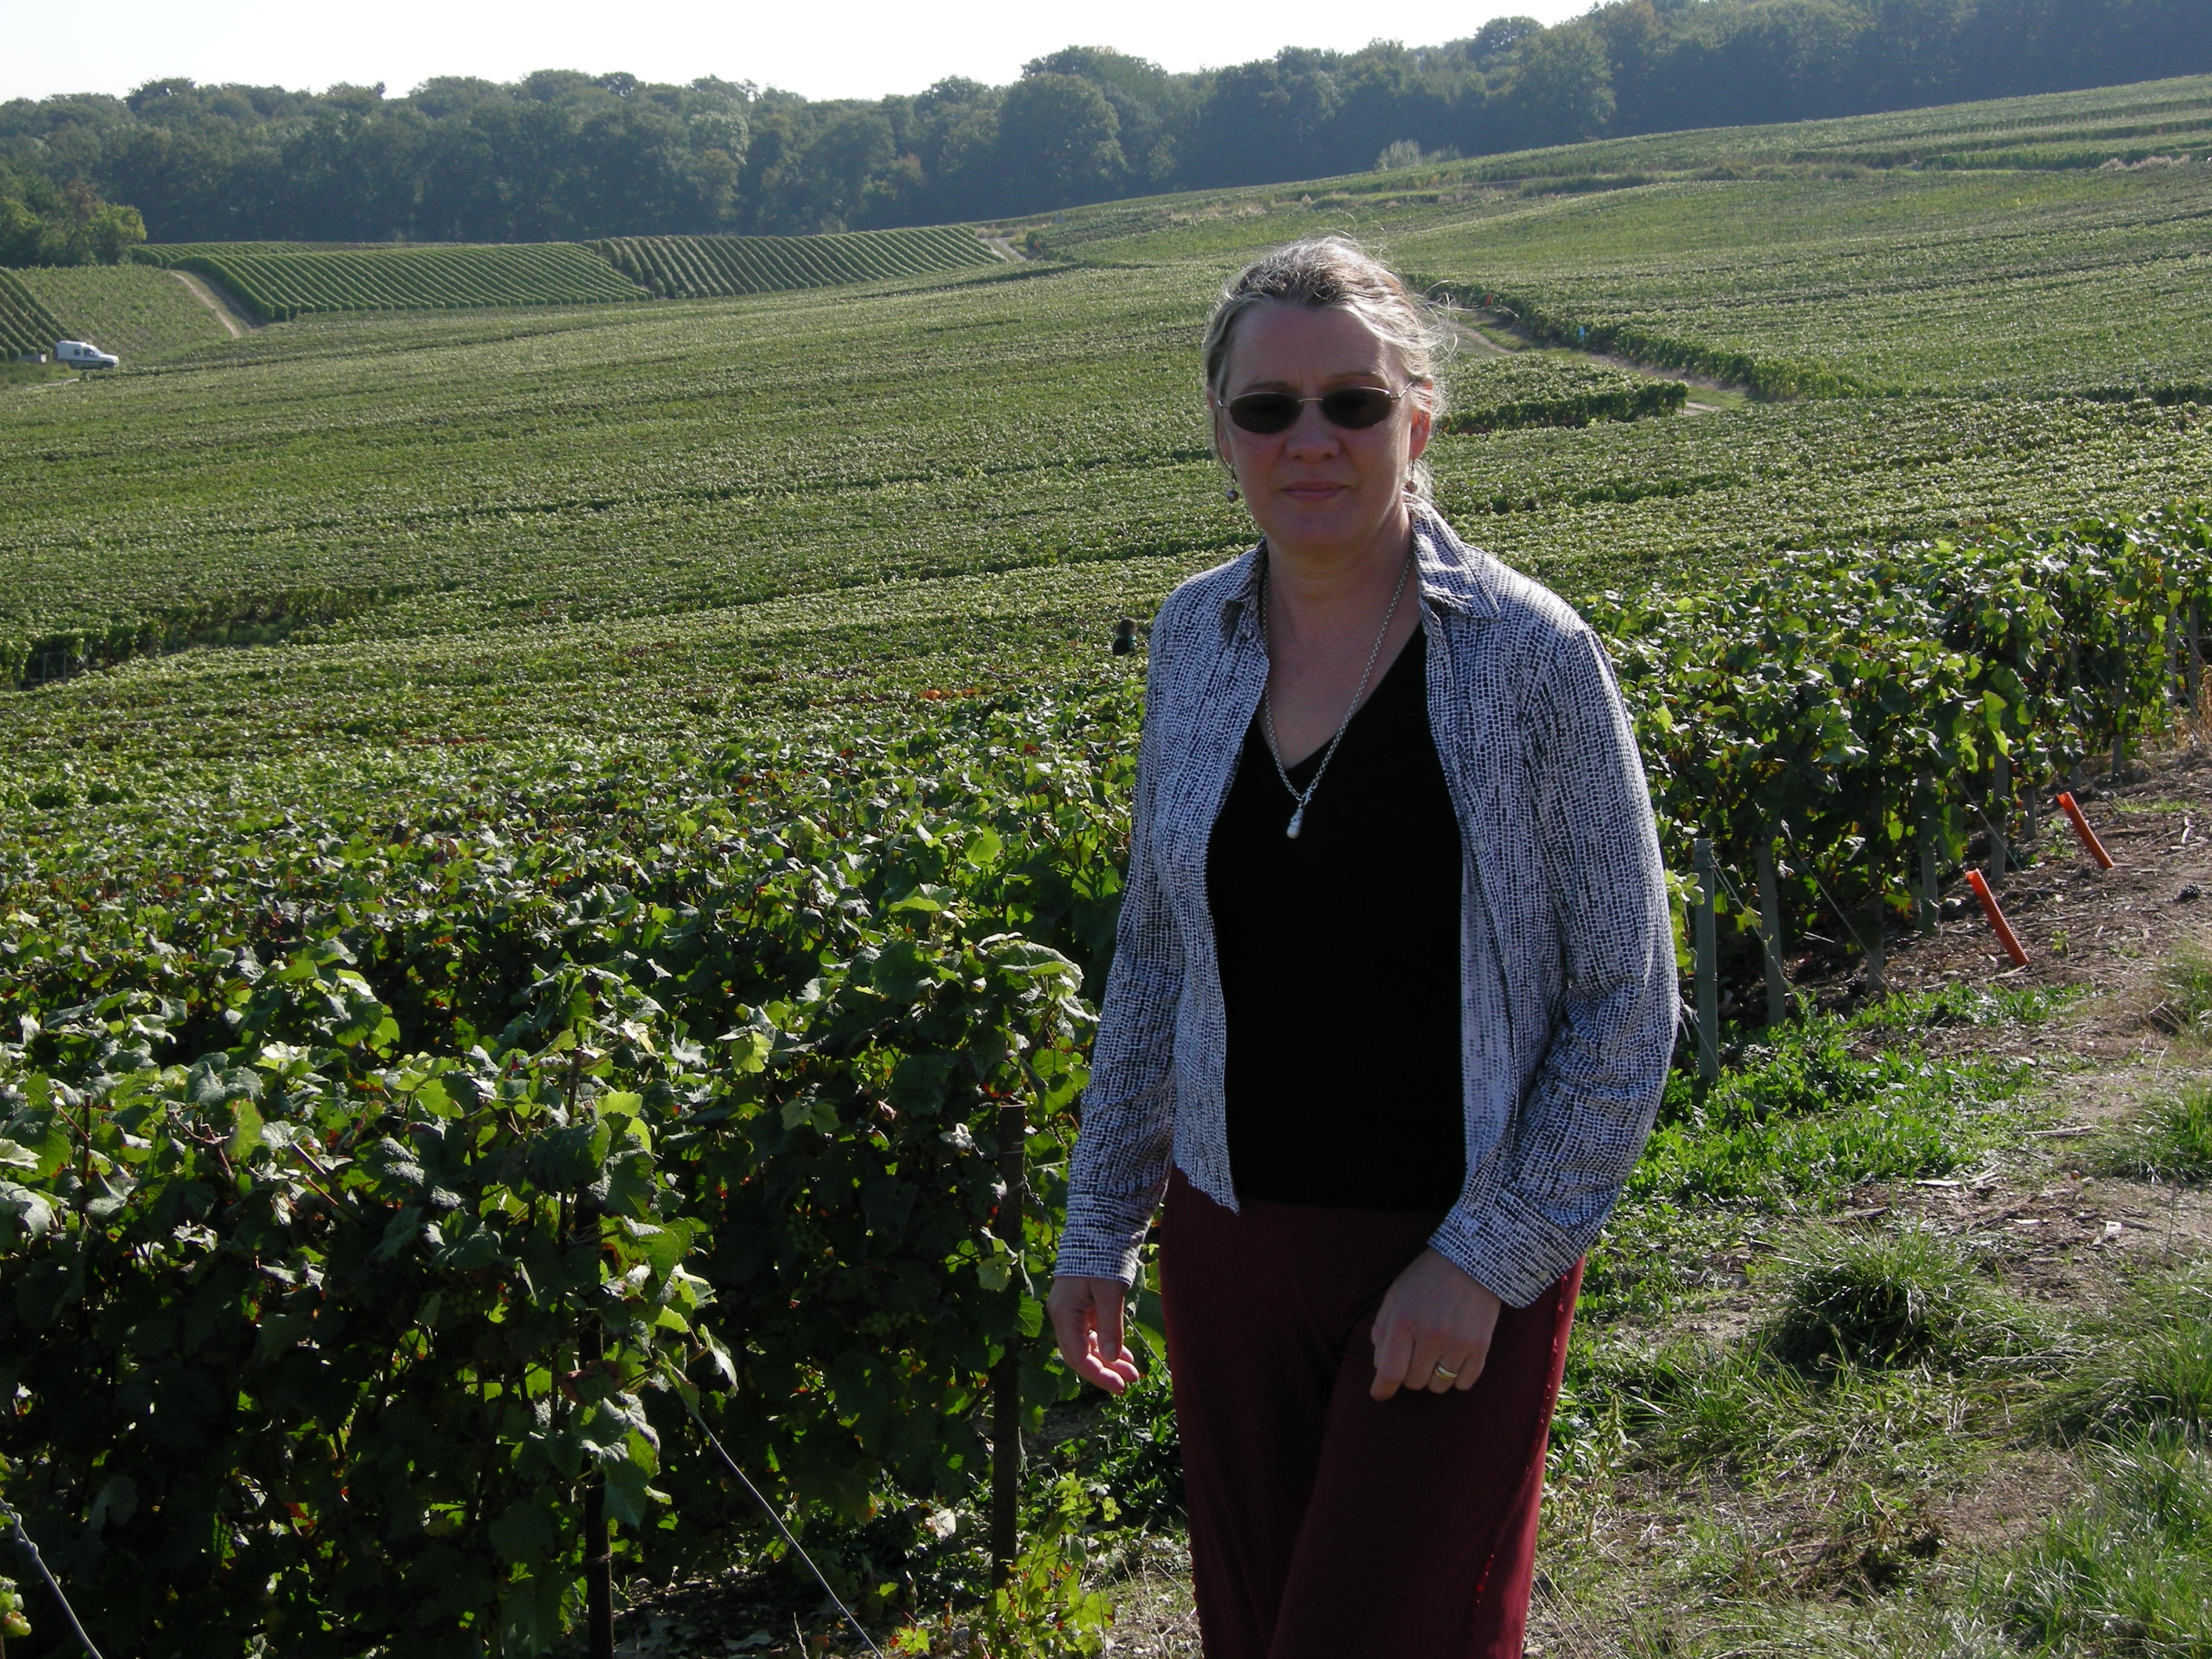 2009 - Writing about champagne